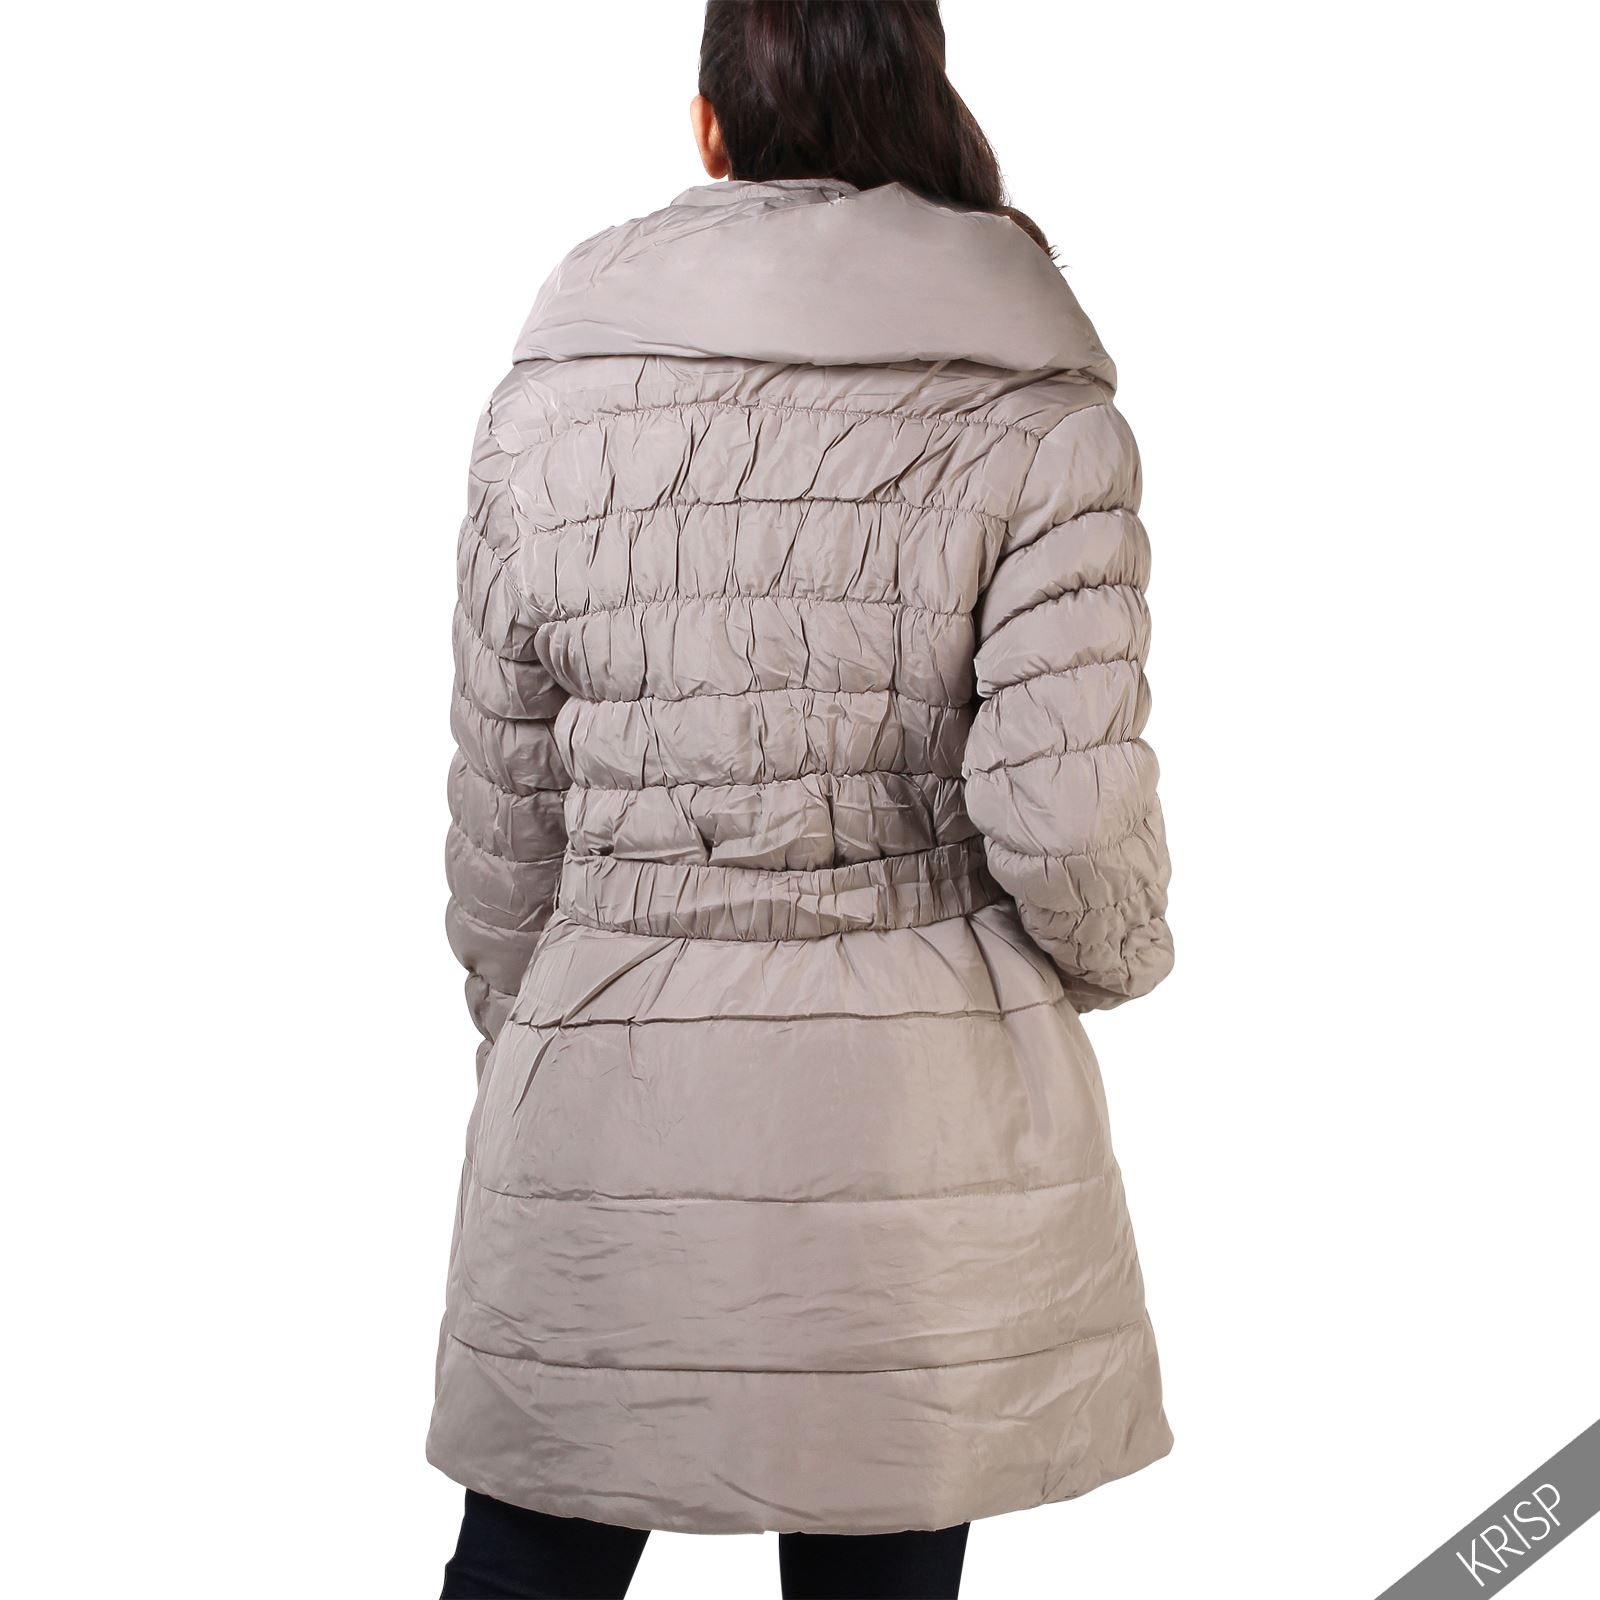 damen warme gesteppte winterjacke parka jacke xxl bergr en plus size mantel ebay. Black Bedroom Furniture Sets. Home Design Ideas